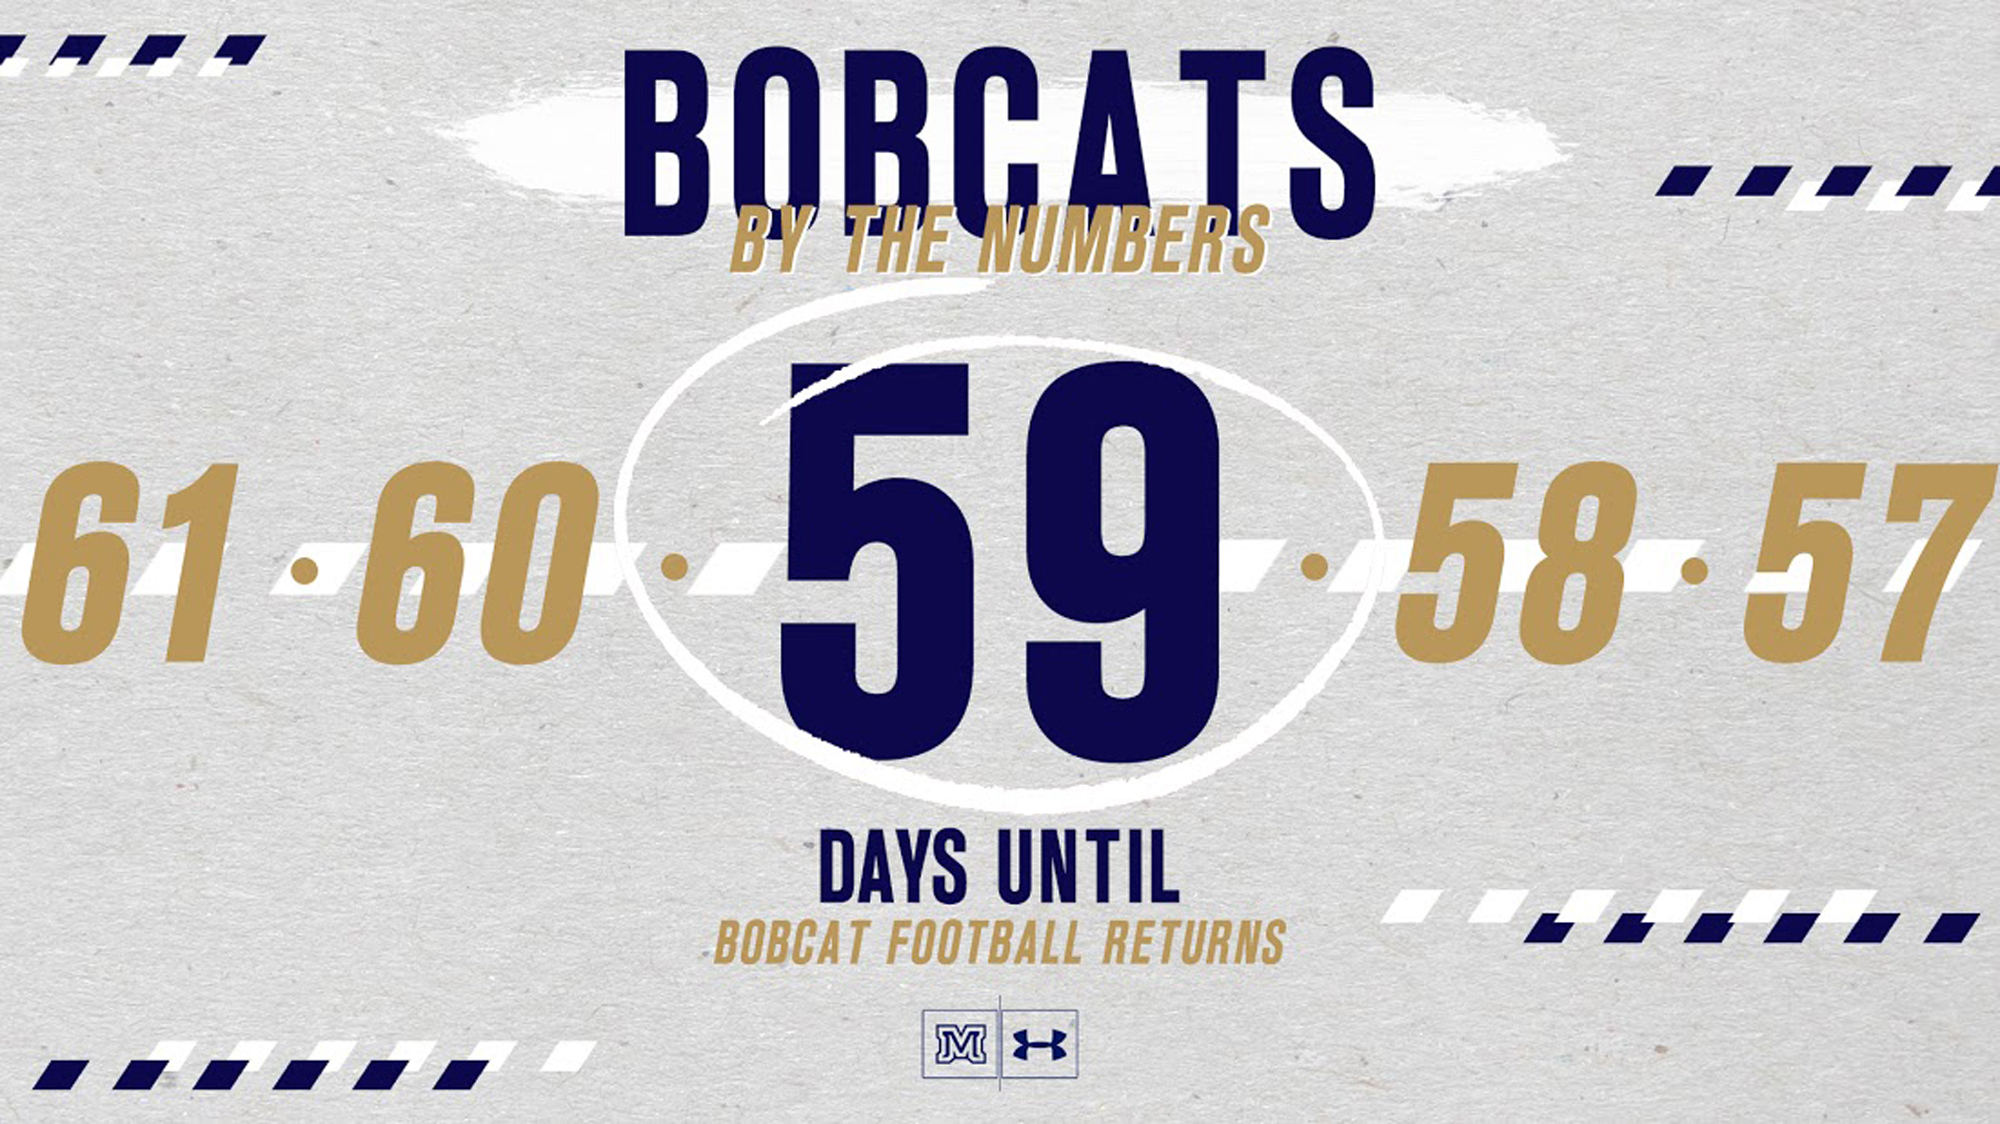 hight resolution of bobcats by the numbers bobcat football returns in 59 days